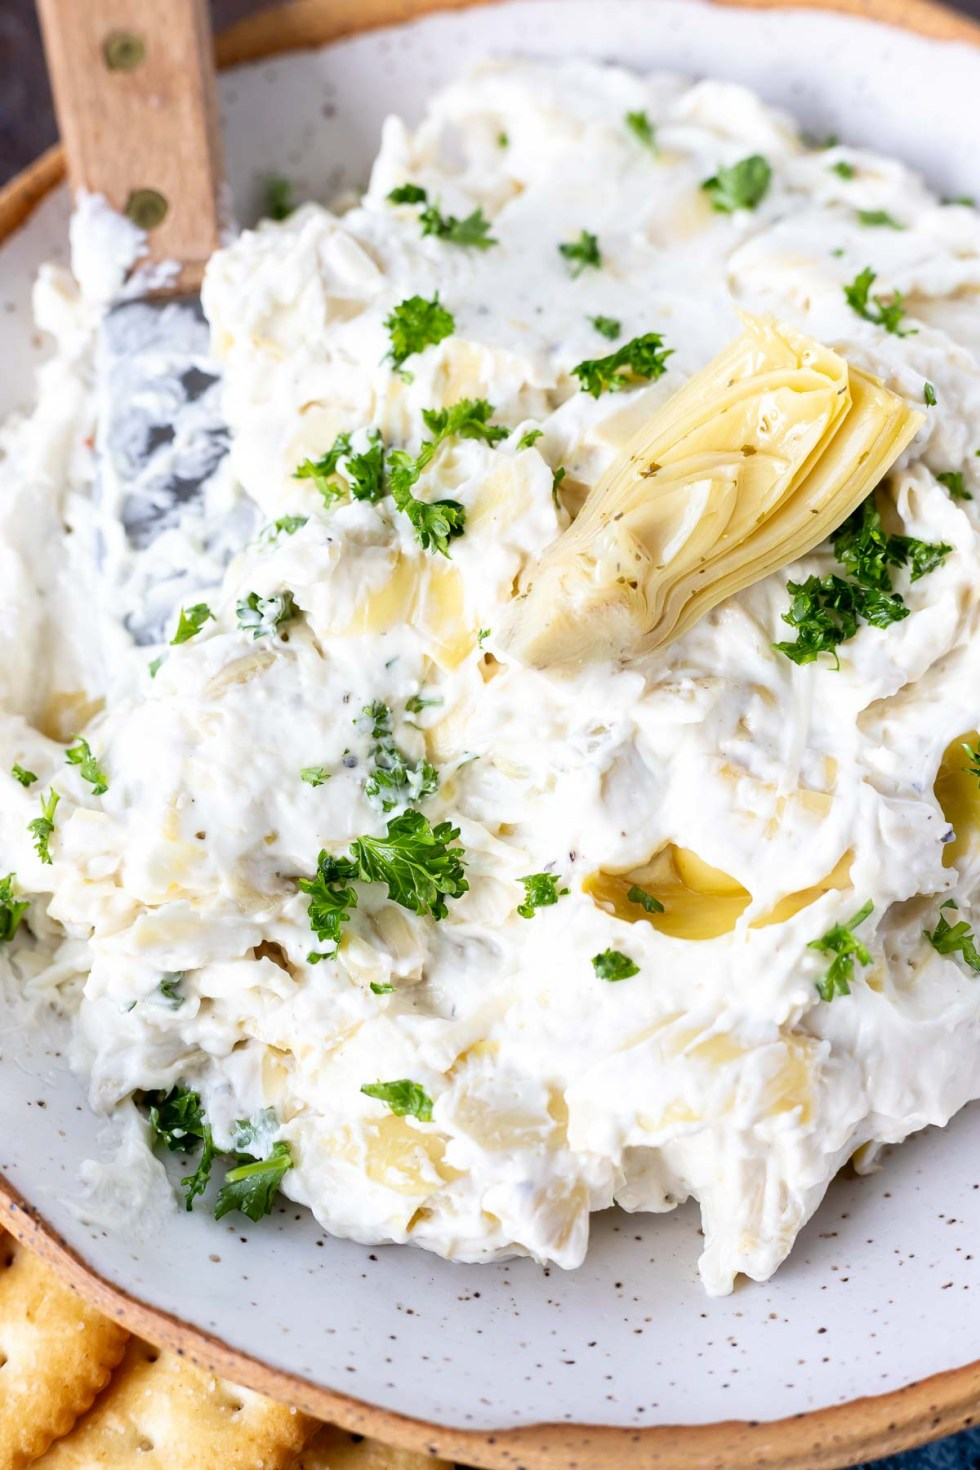 creamy dip topped with an artichoke heart and chopped parsley